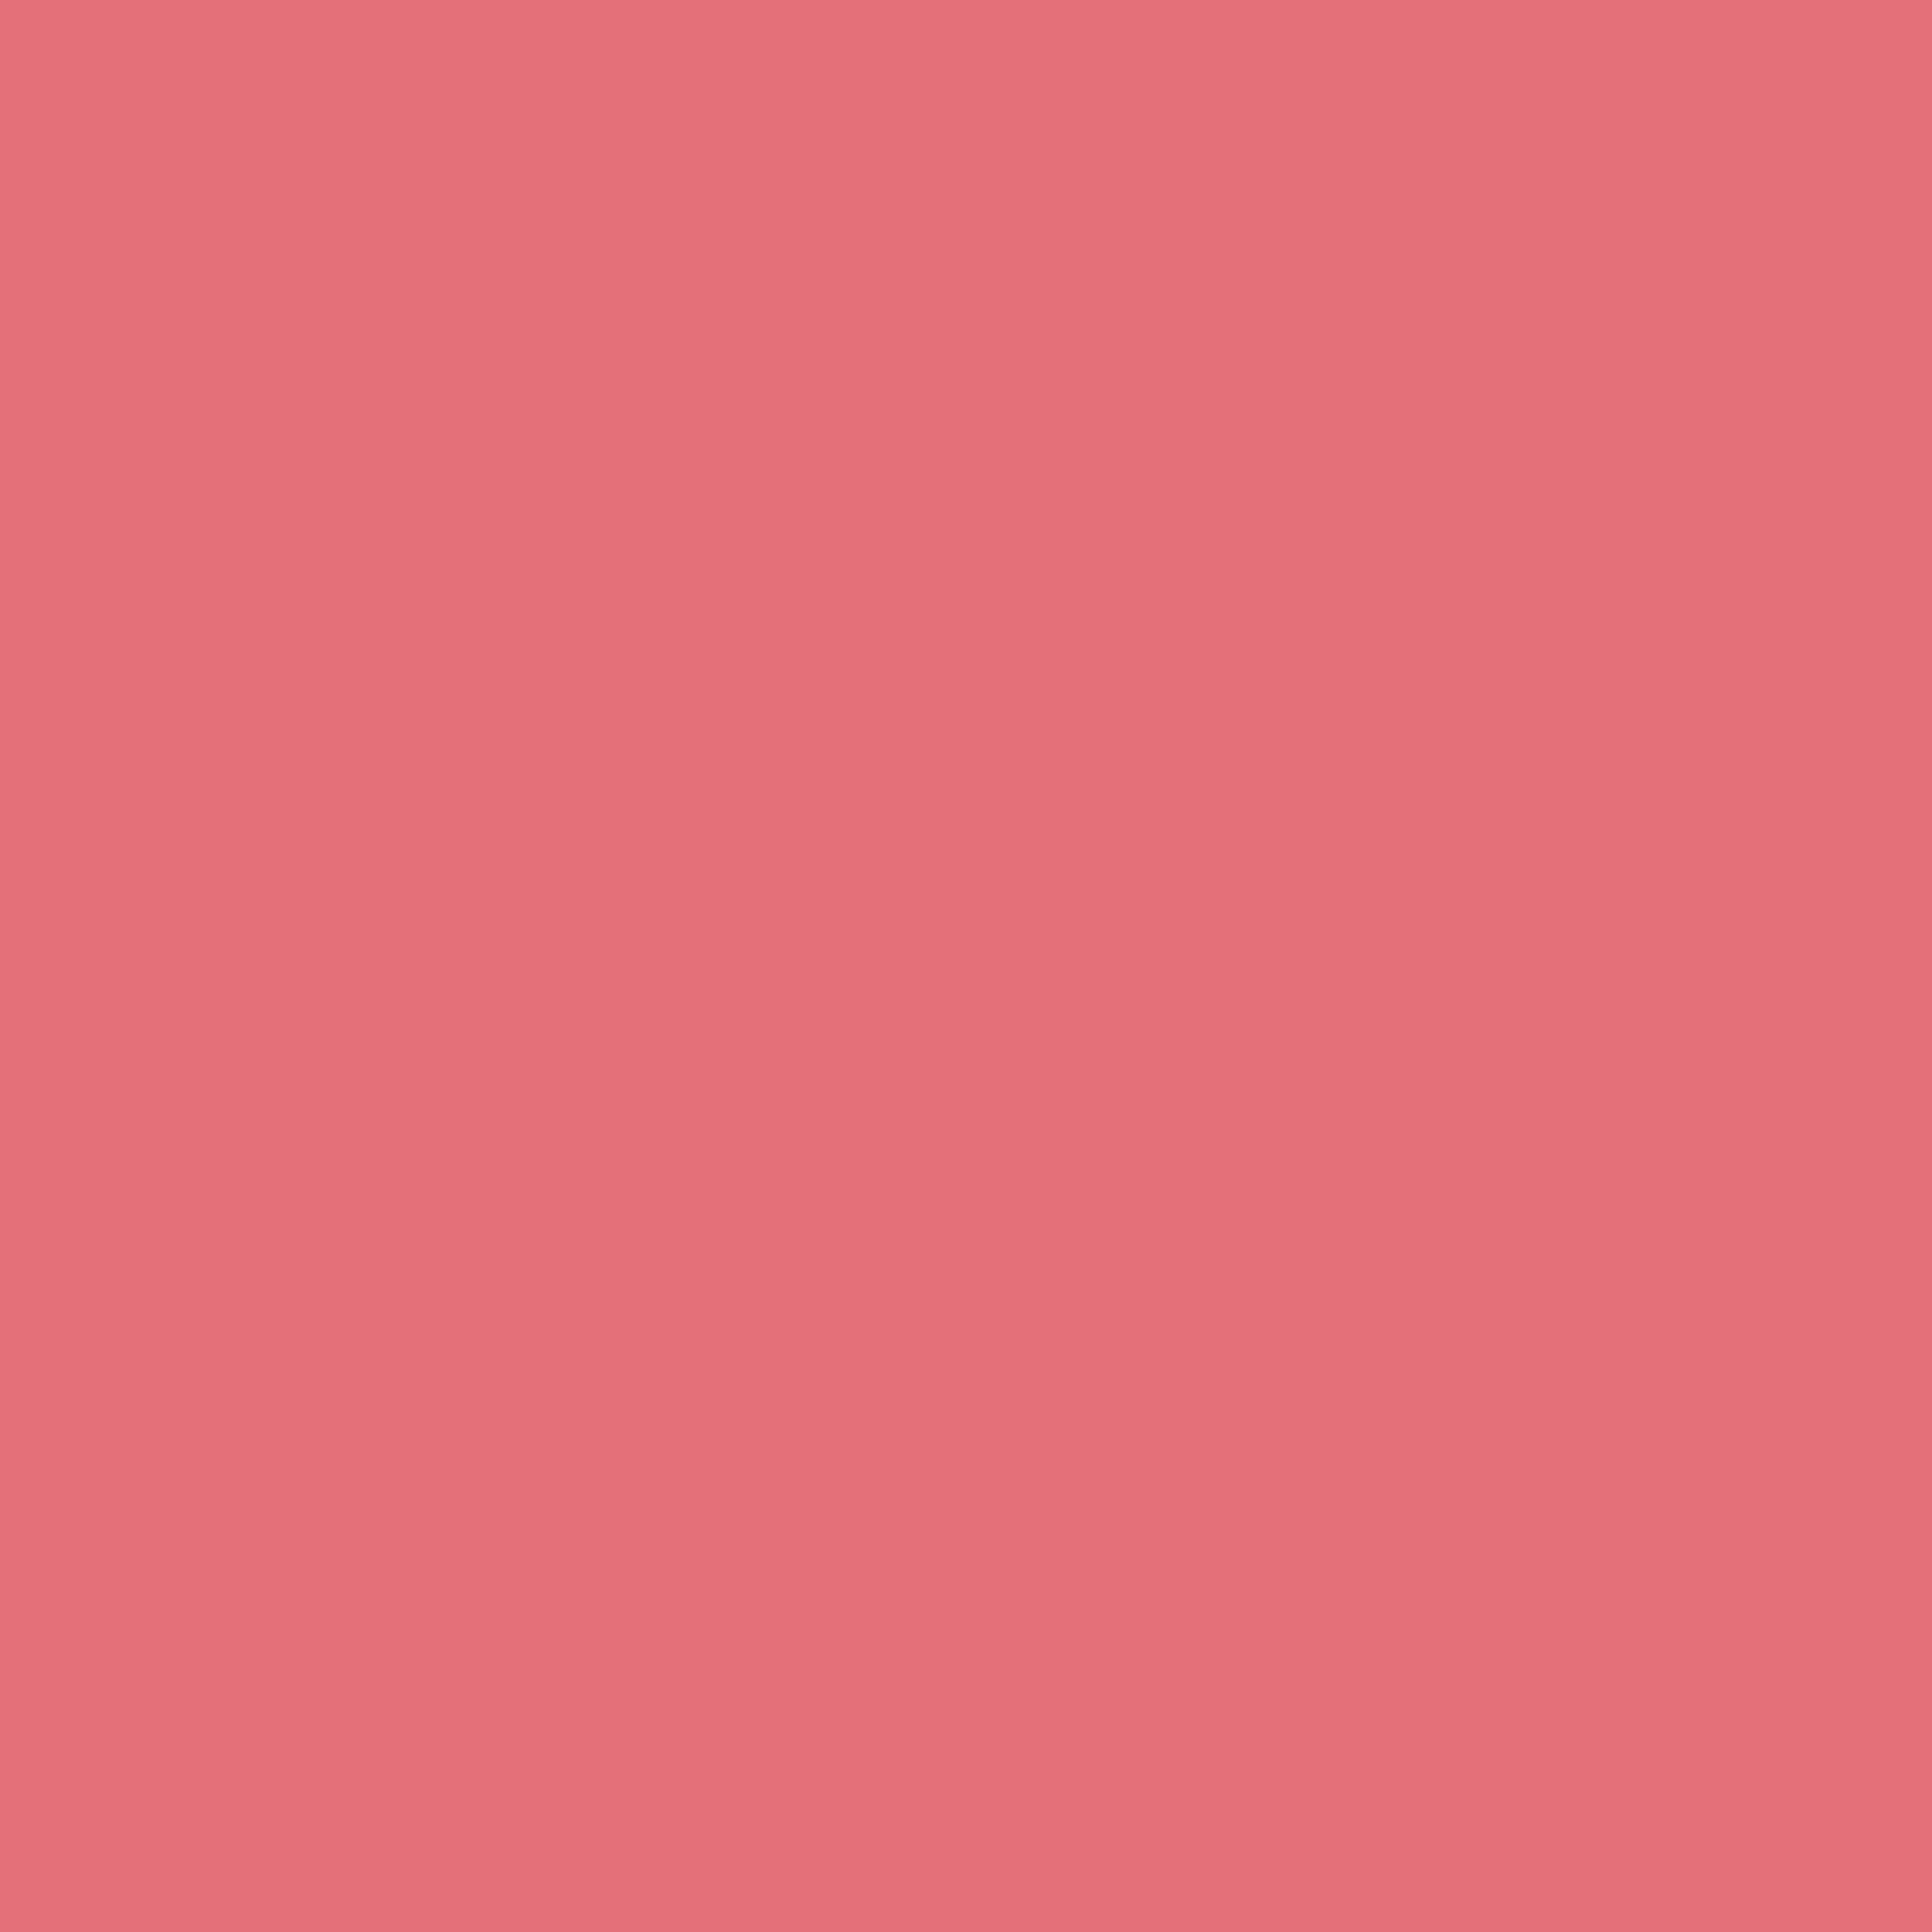 2048x2048 Tango Pink Solid Color Background